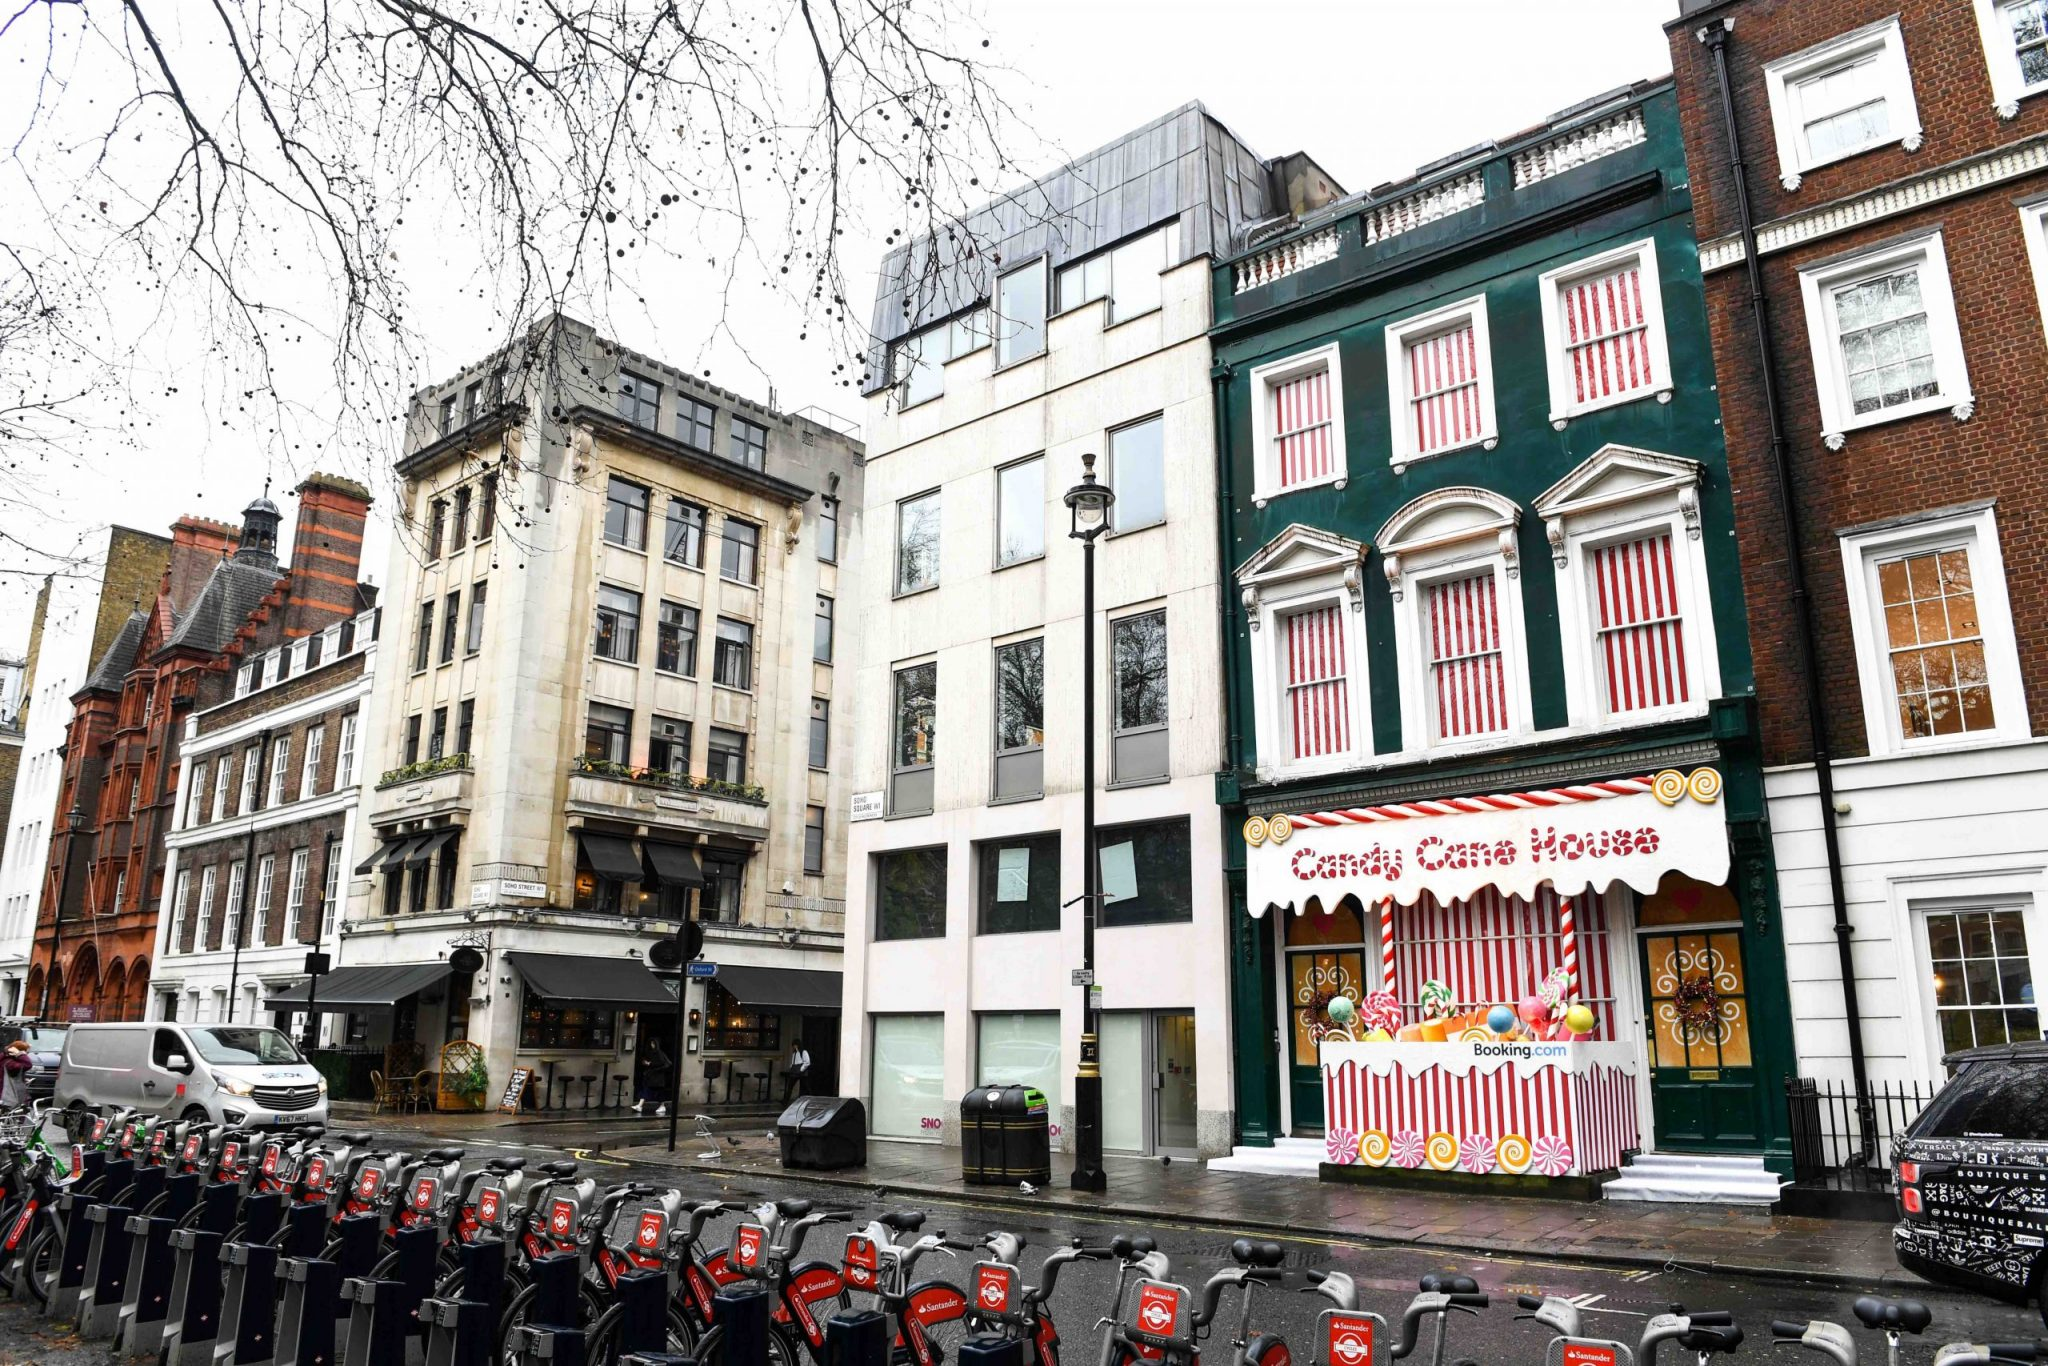 A Candy Cane House is unveiled in Soho by Booking.com, just in time for the festive period. PA Photo. Picture date: Tuesday December 17, 2019.  Photo credit : Doug Peters/PA Wire